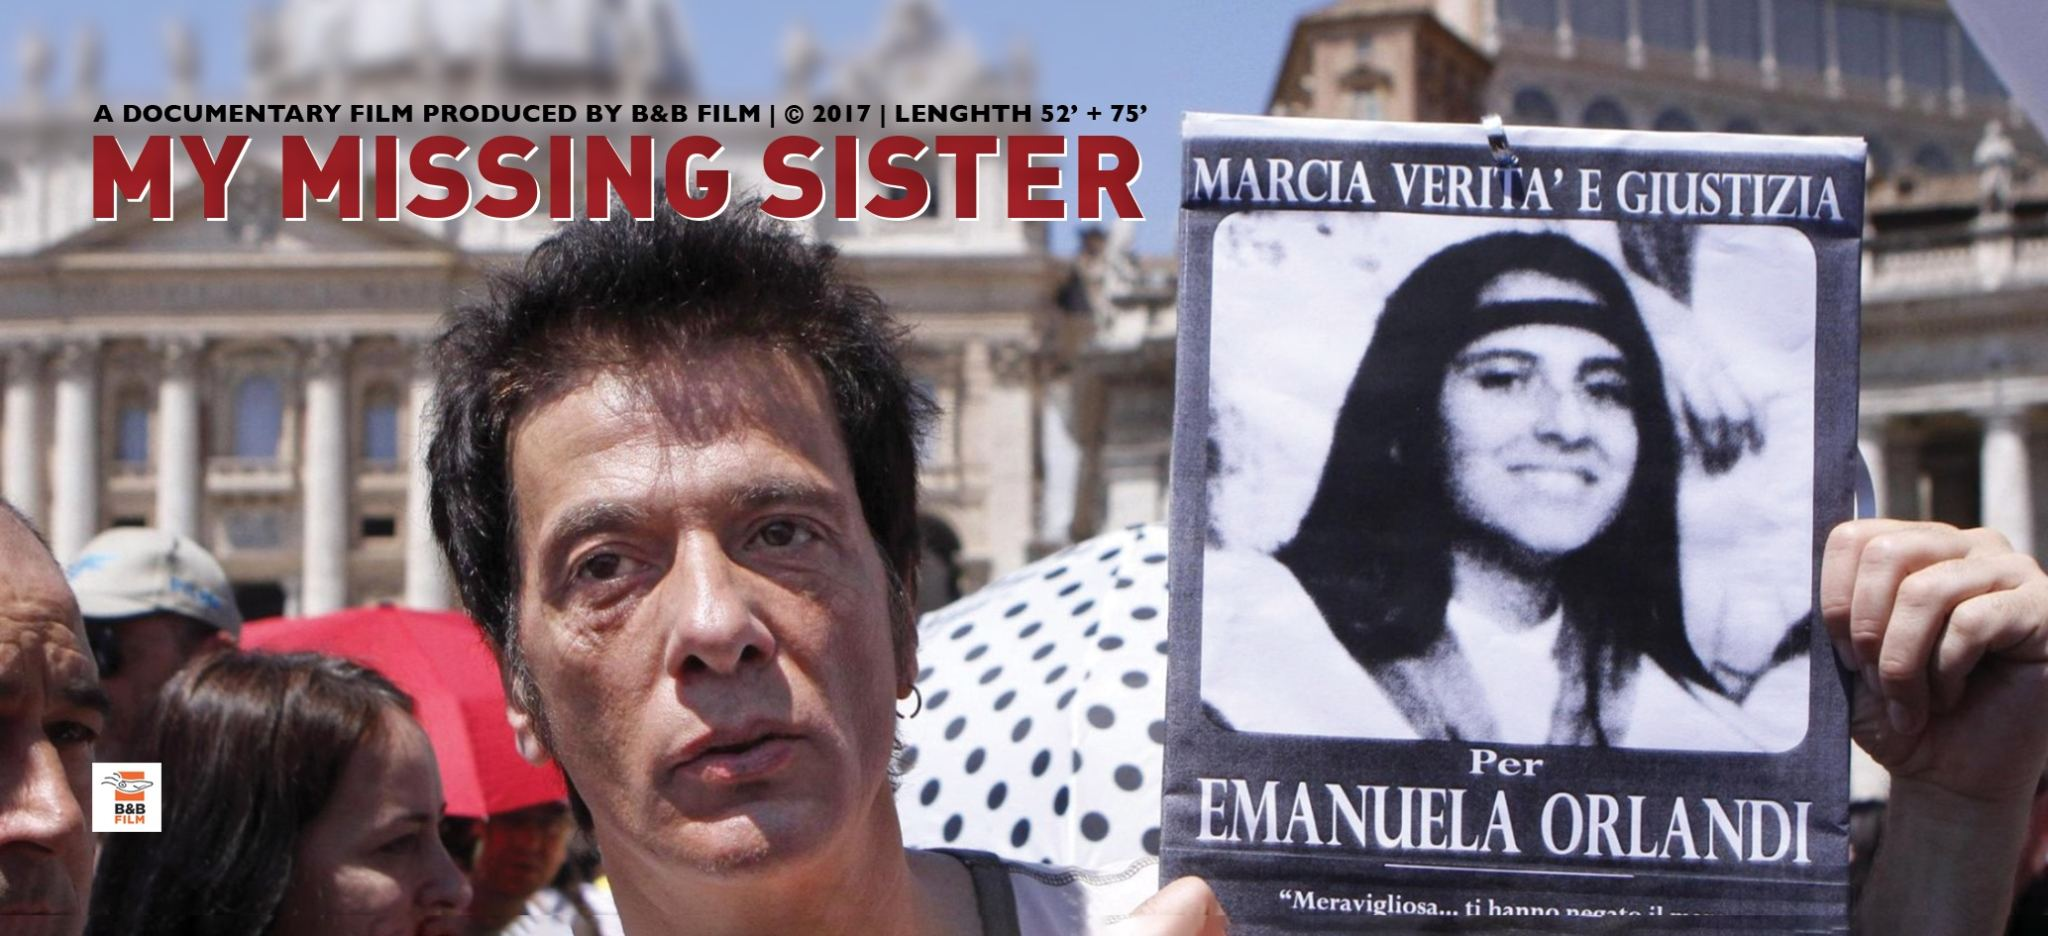 Emanuela Orlandi, thirty years later. My Missing Sister (B&B Film, Film Production) by Alessandra Bruno, projects of the MIA|DOC Pitching Forum